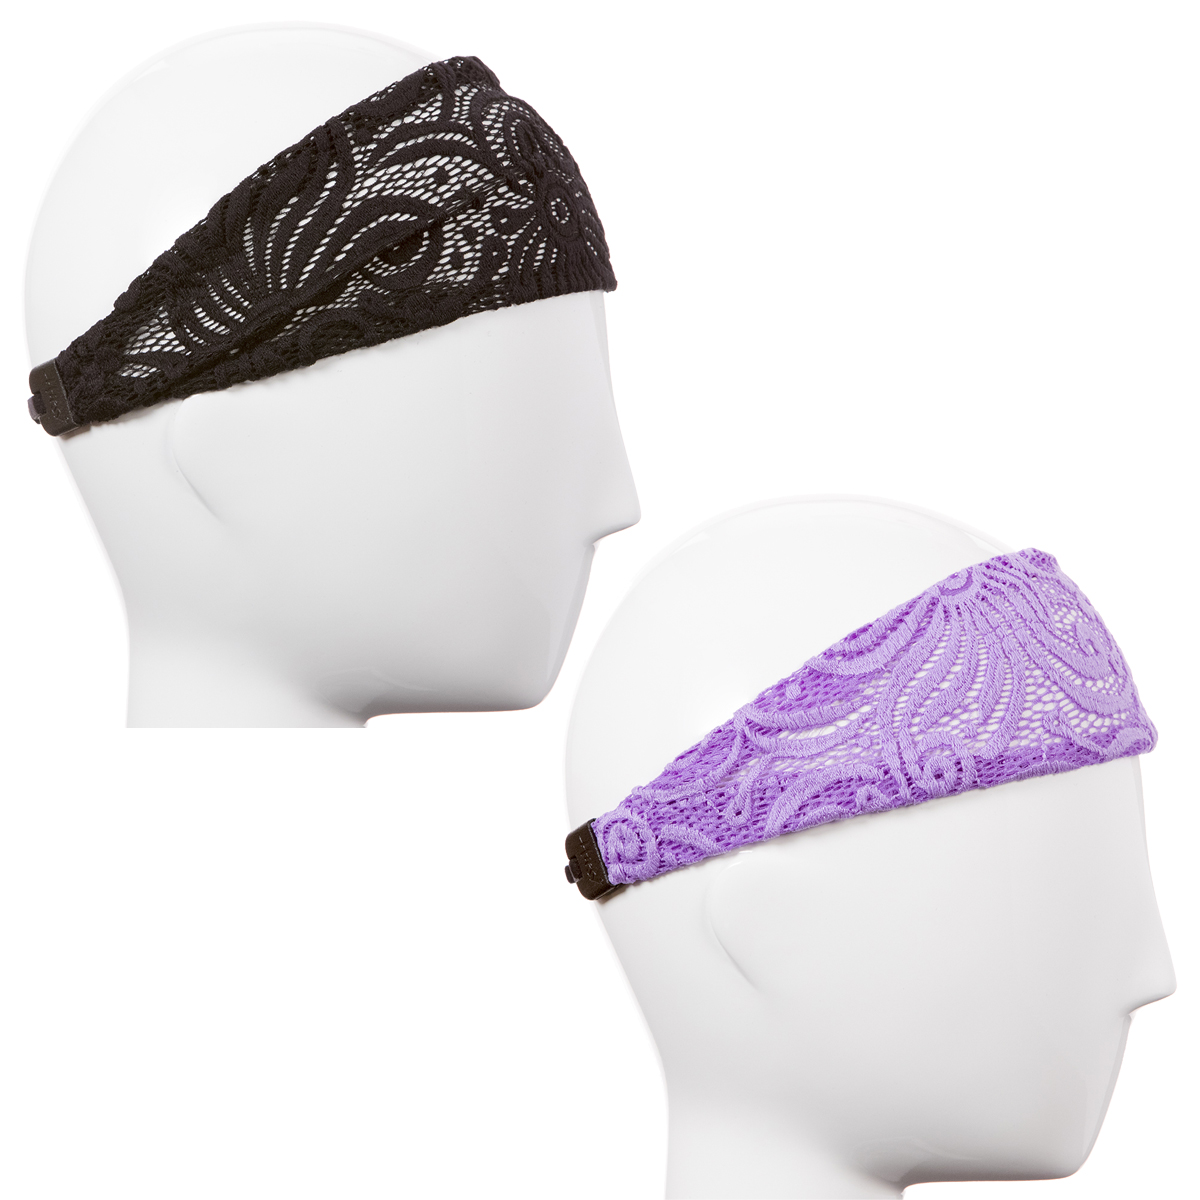 Hipsy Xflex Adjustable & Stretchy Lace Headbands for Women Gift Pack (Lace Black & Purple 2pk)